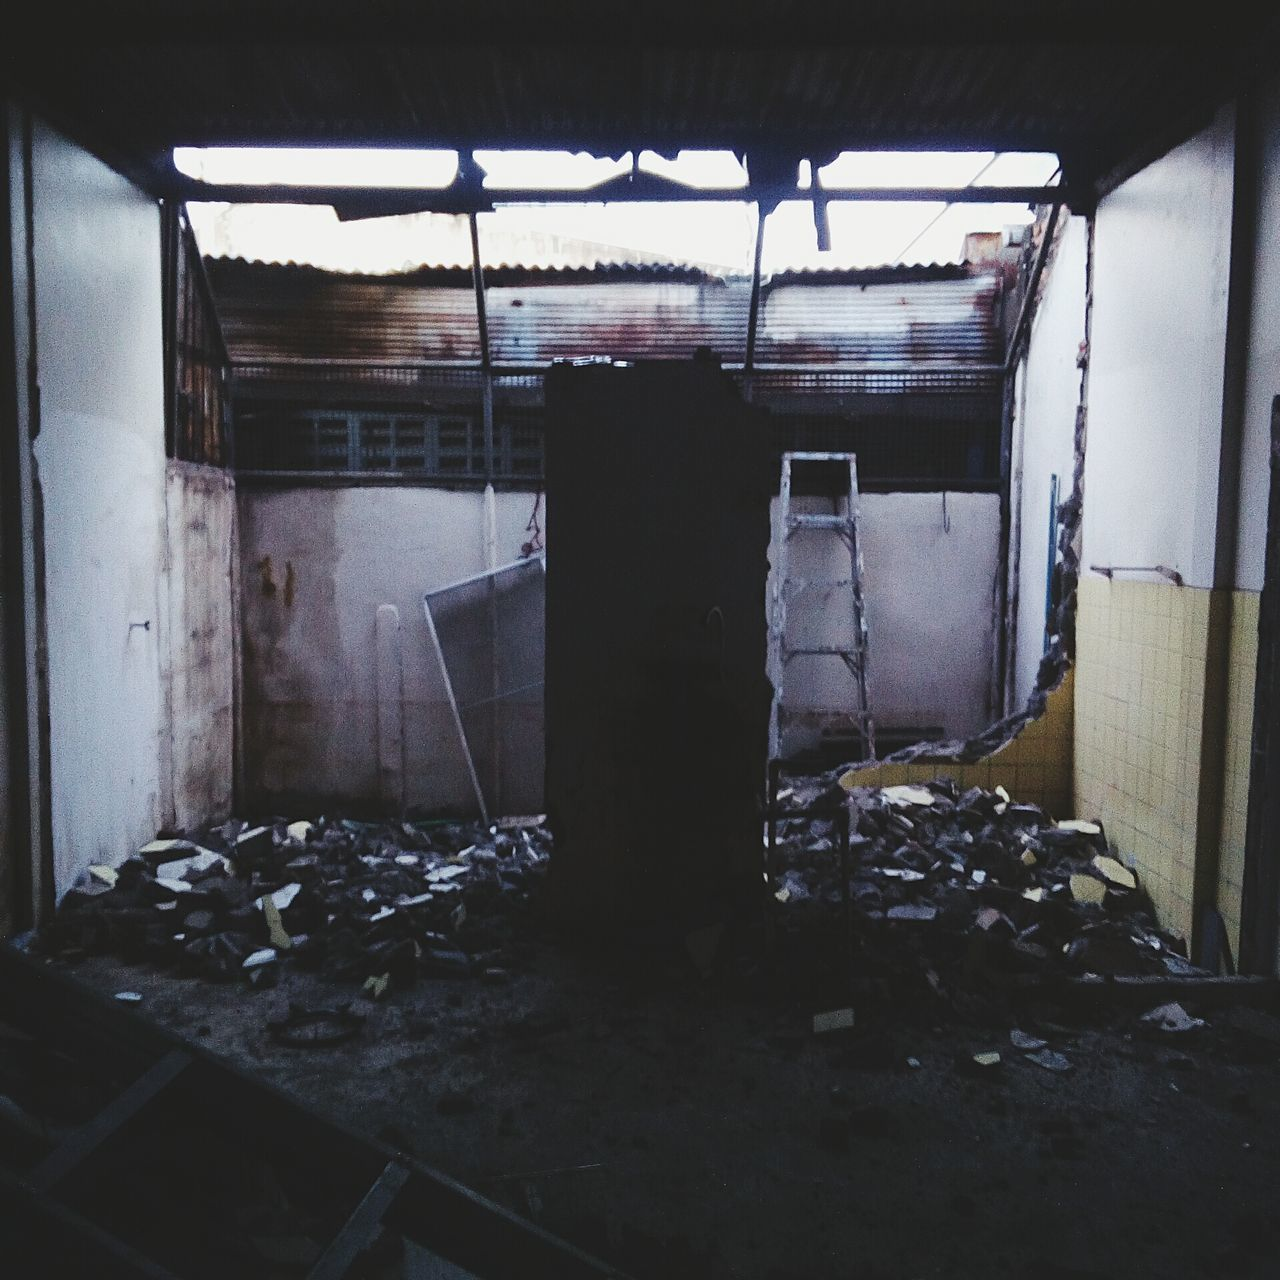 abandoned, obsolete, run-down, damaged, indoors, no people, built structure, bad condition, architecture, day